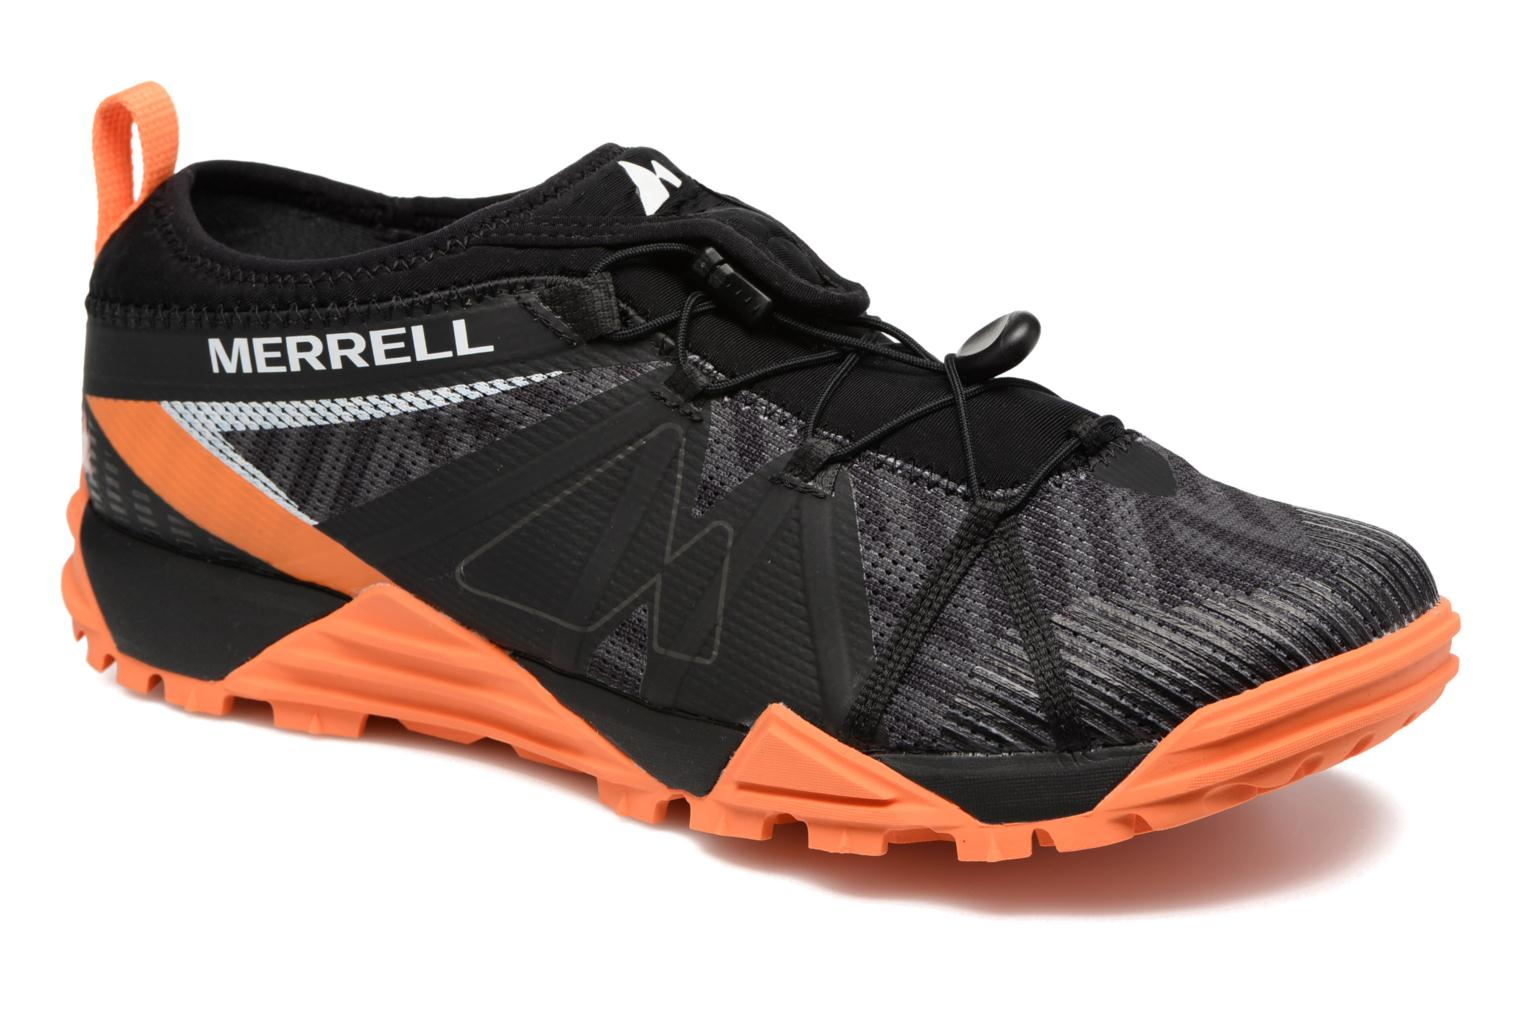 Marques Chaussure homme Merrell homme Avalaunch Tough Mudder Mudder Orange